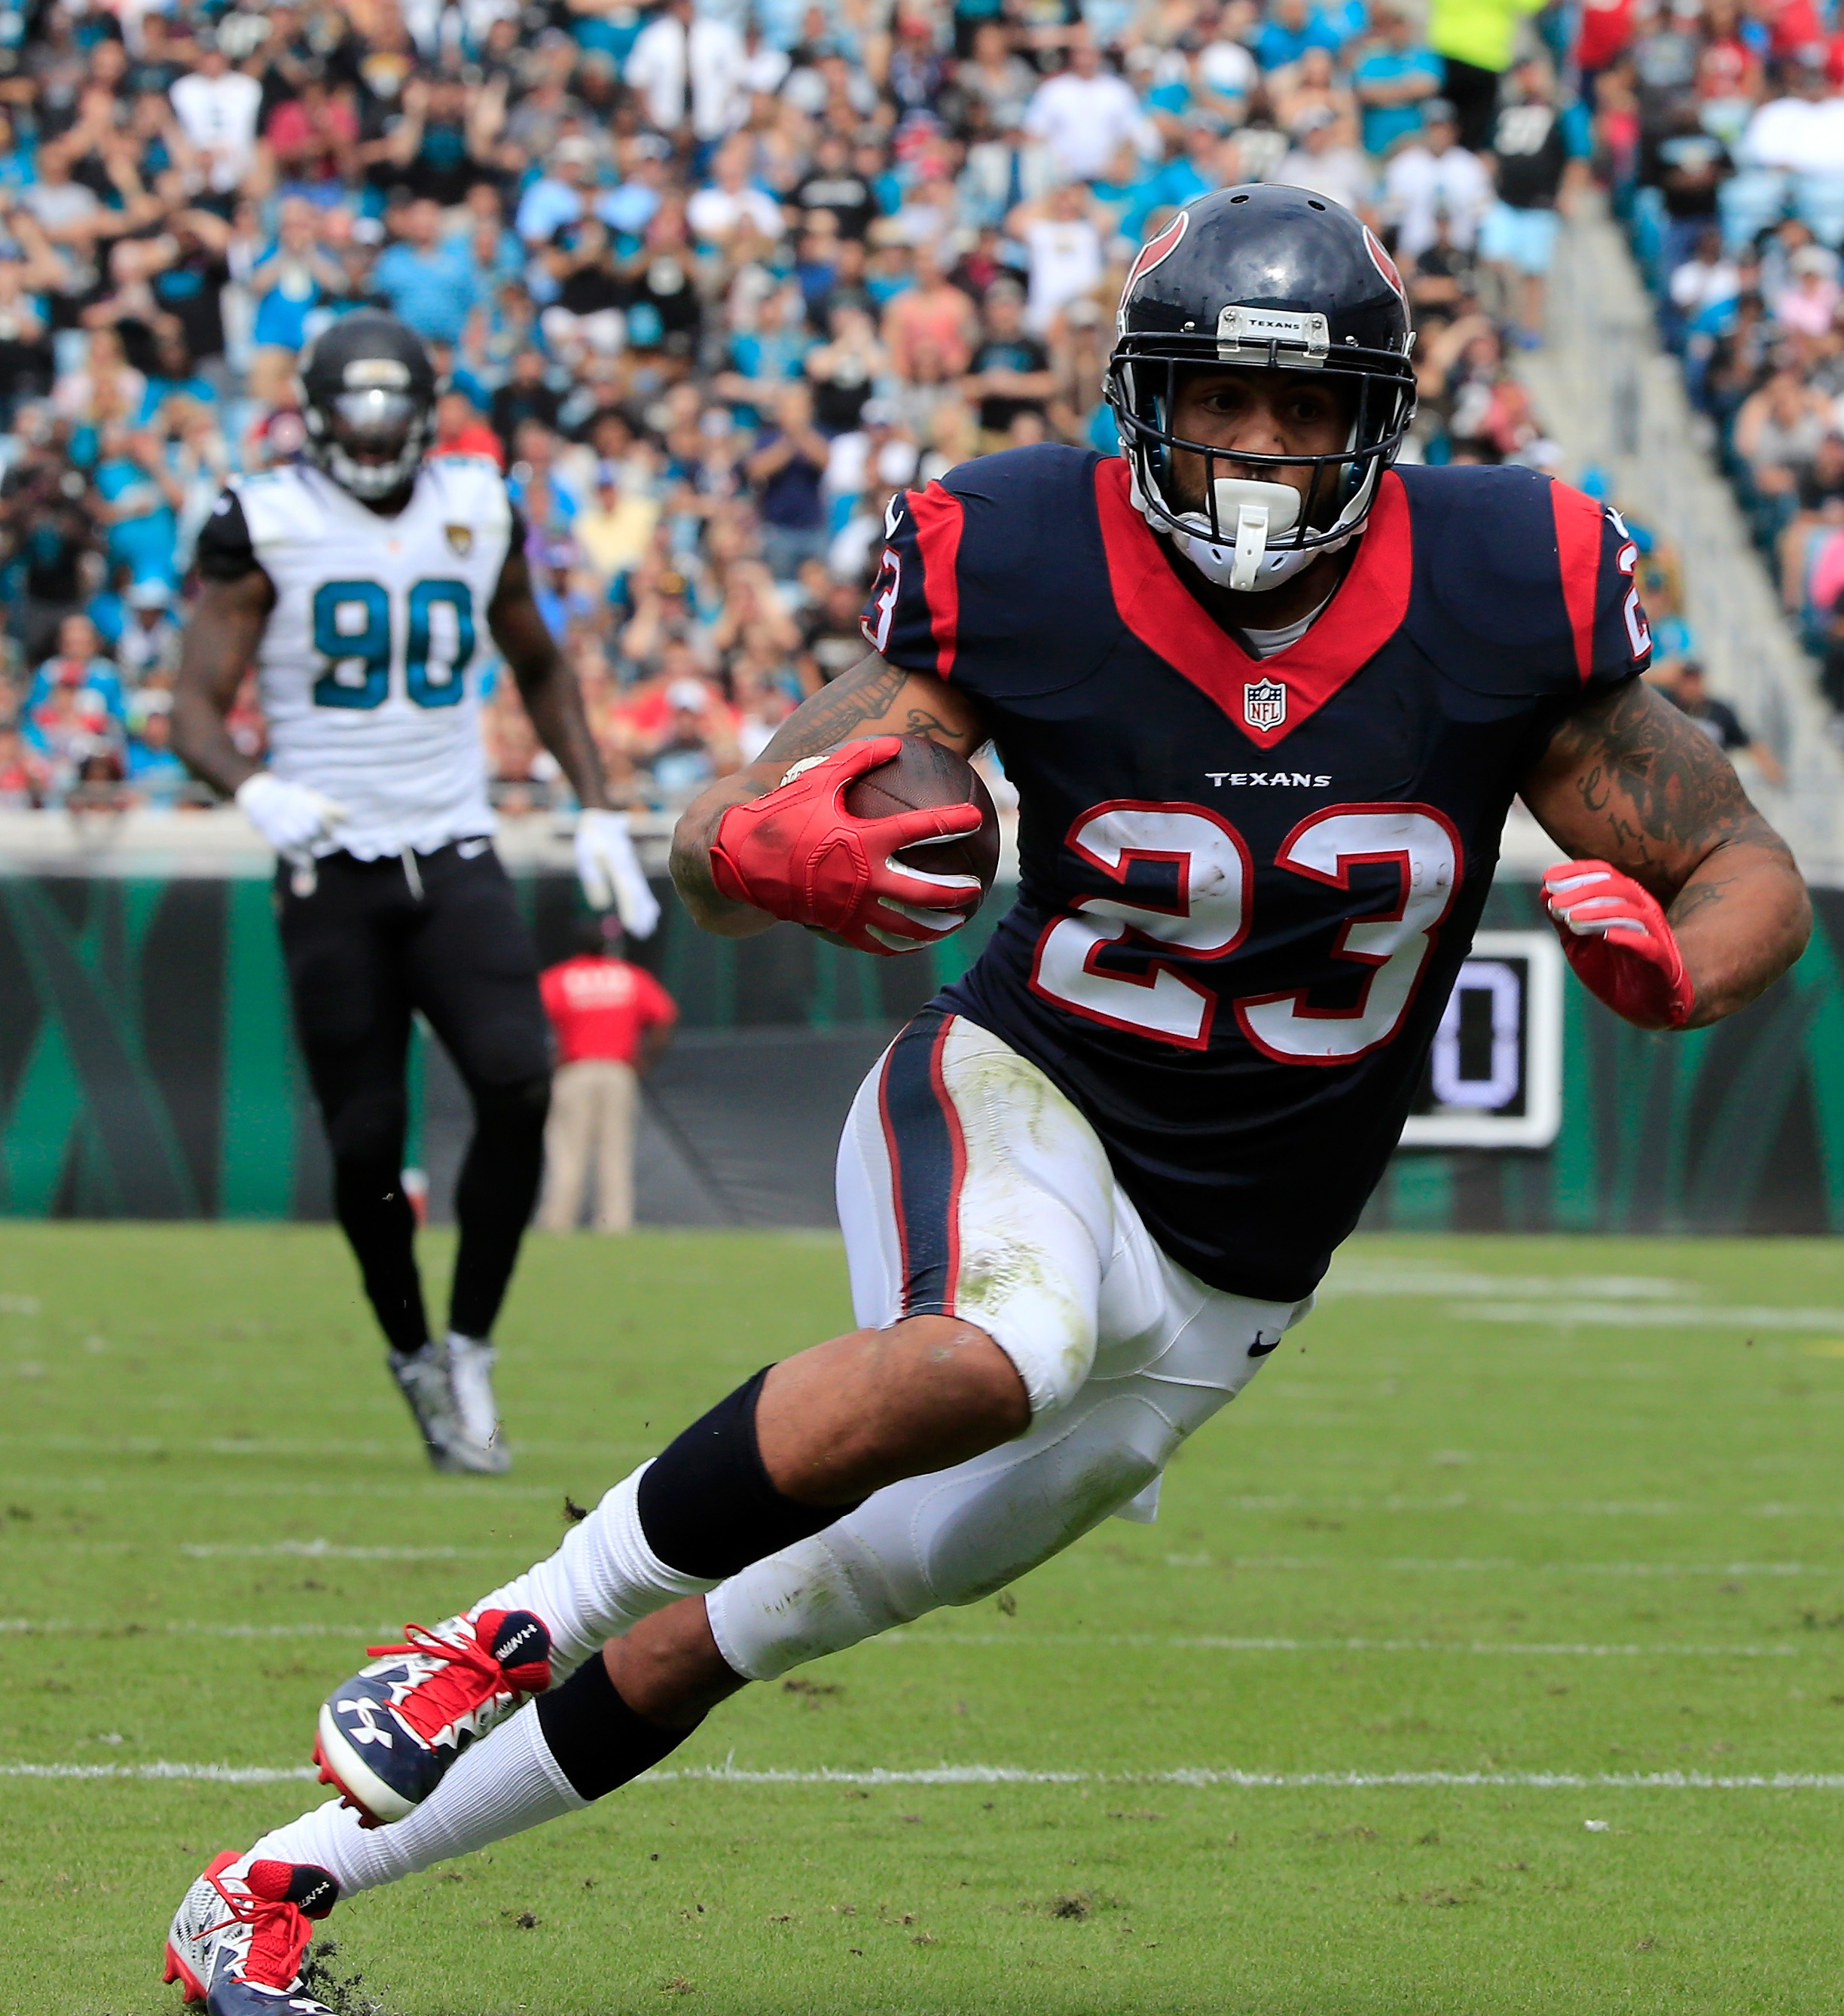 Arian Foster has the game's only touchdown at halftime. (Getty)